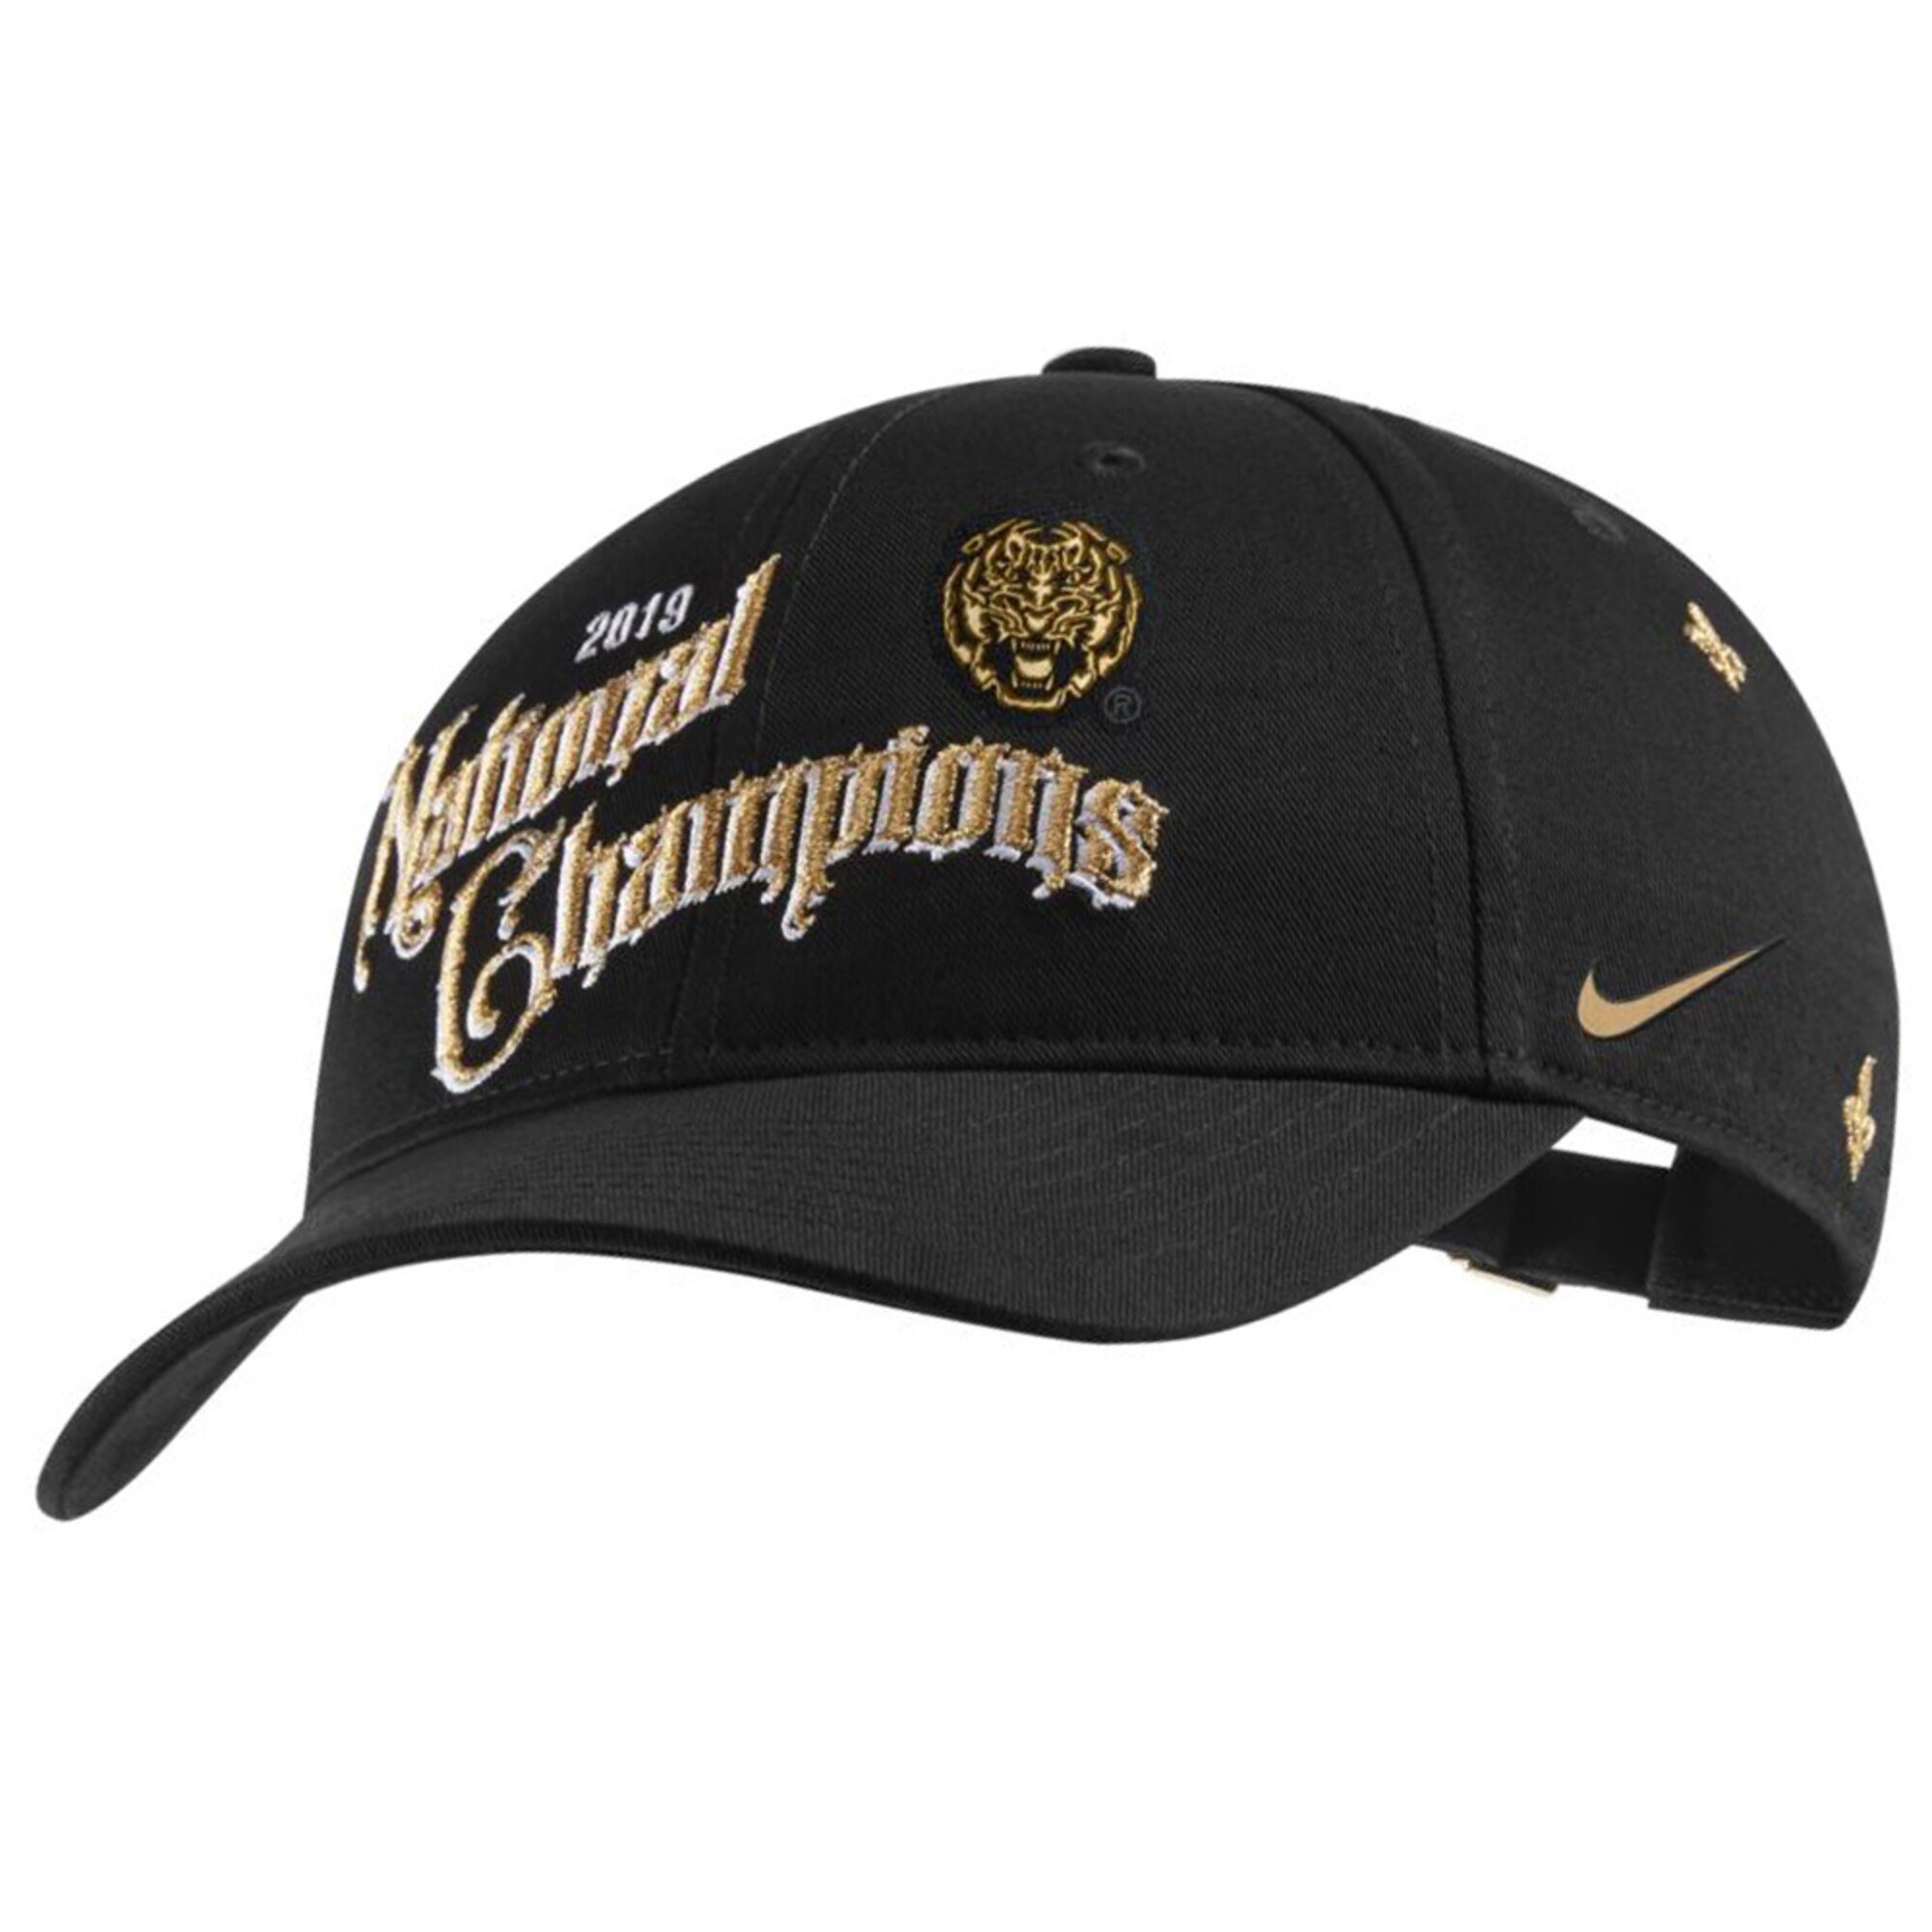 Z//A Lakers 2020 Championship Caps,Sports Hat Breathable Outdoor Run Cap,Basketball Championship Memorabilia,Youth Students And Family Fan Gift